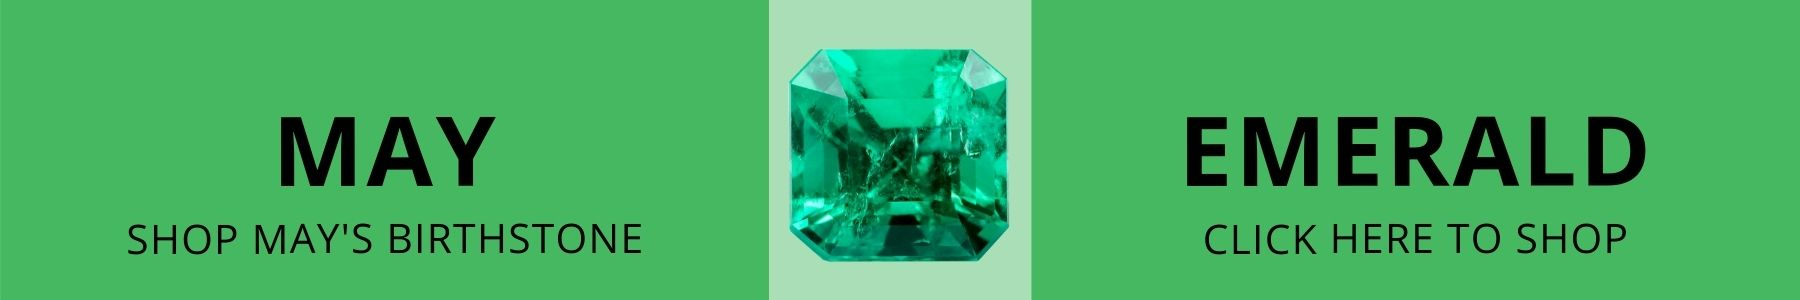 Emerald is the May birthstone